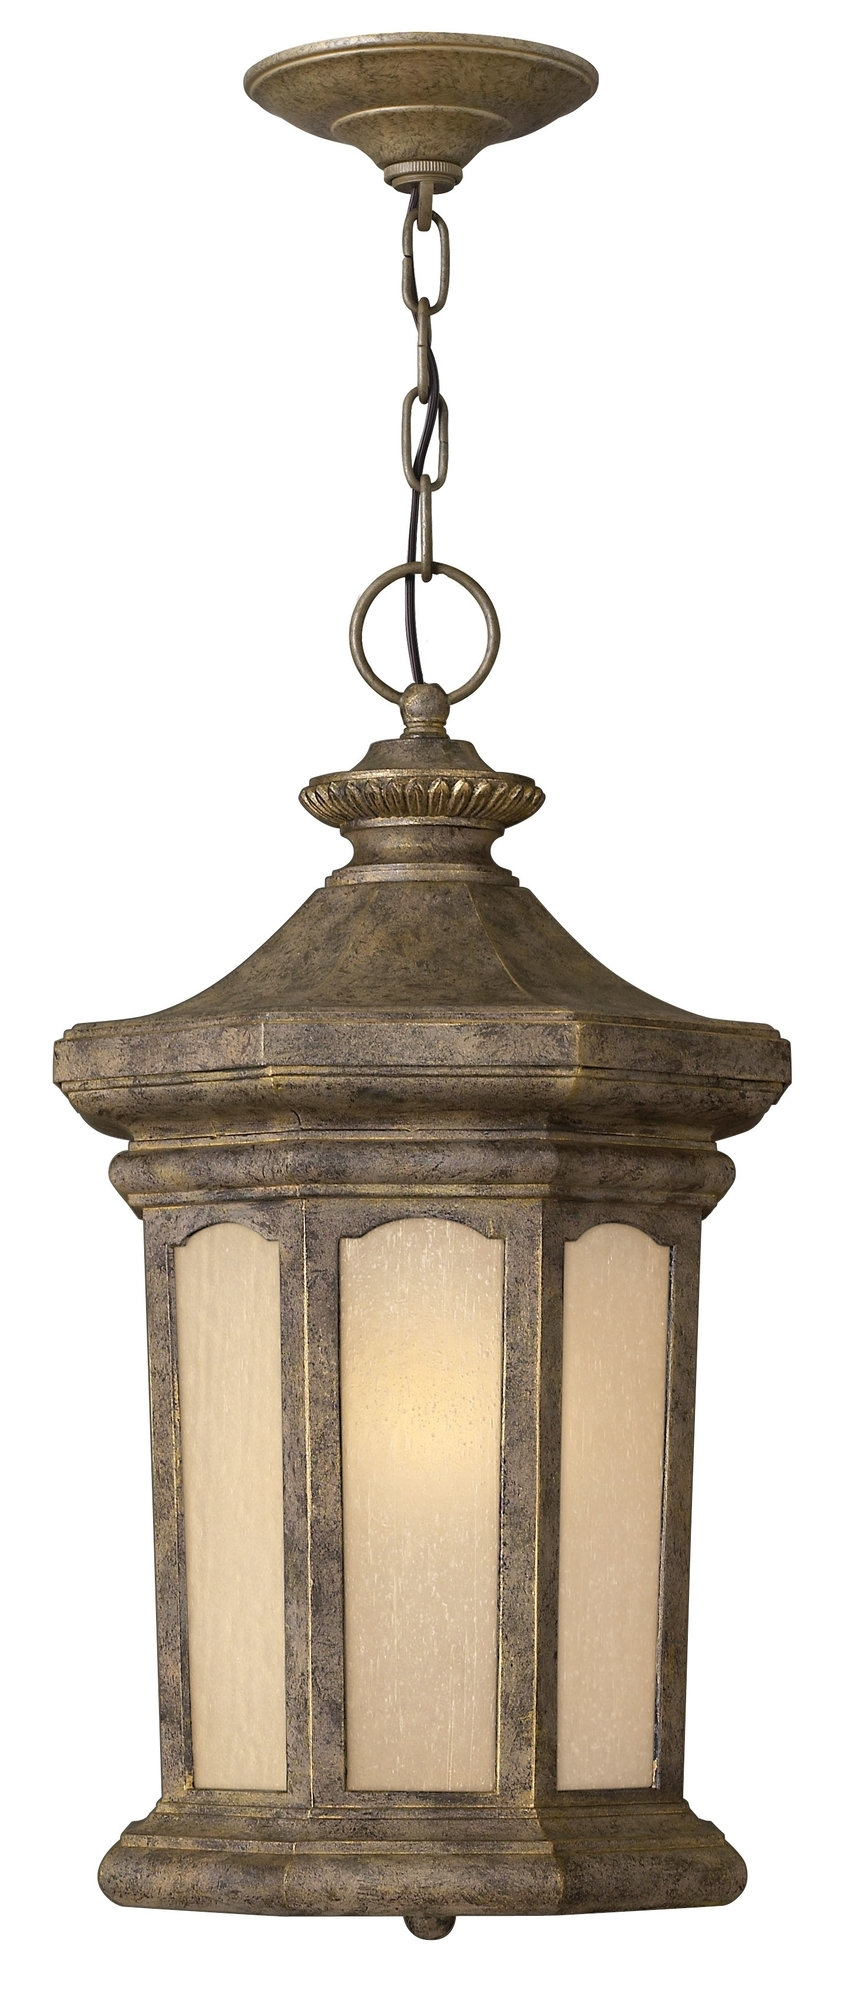 Hinkley Lighting Rowe Park 1 Light Outdoor Hanging Lantern | Ebay Pertaining To Outdoor Hanging Lights At Ebay (View 12 of 15)